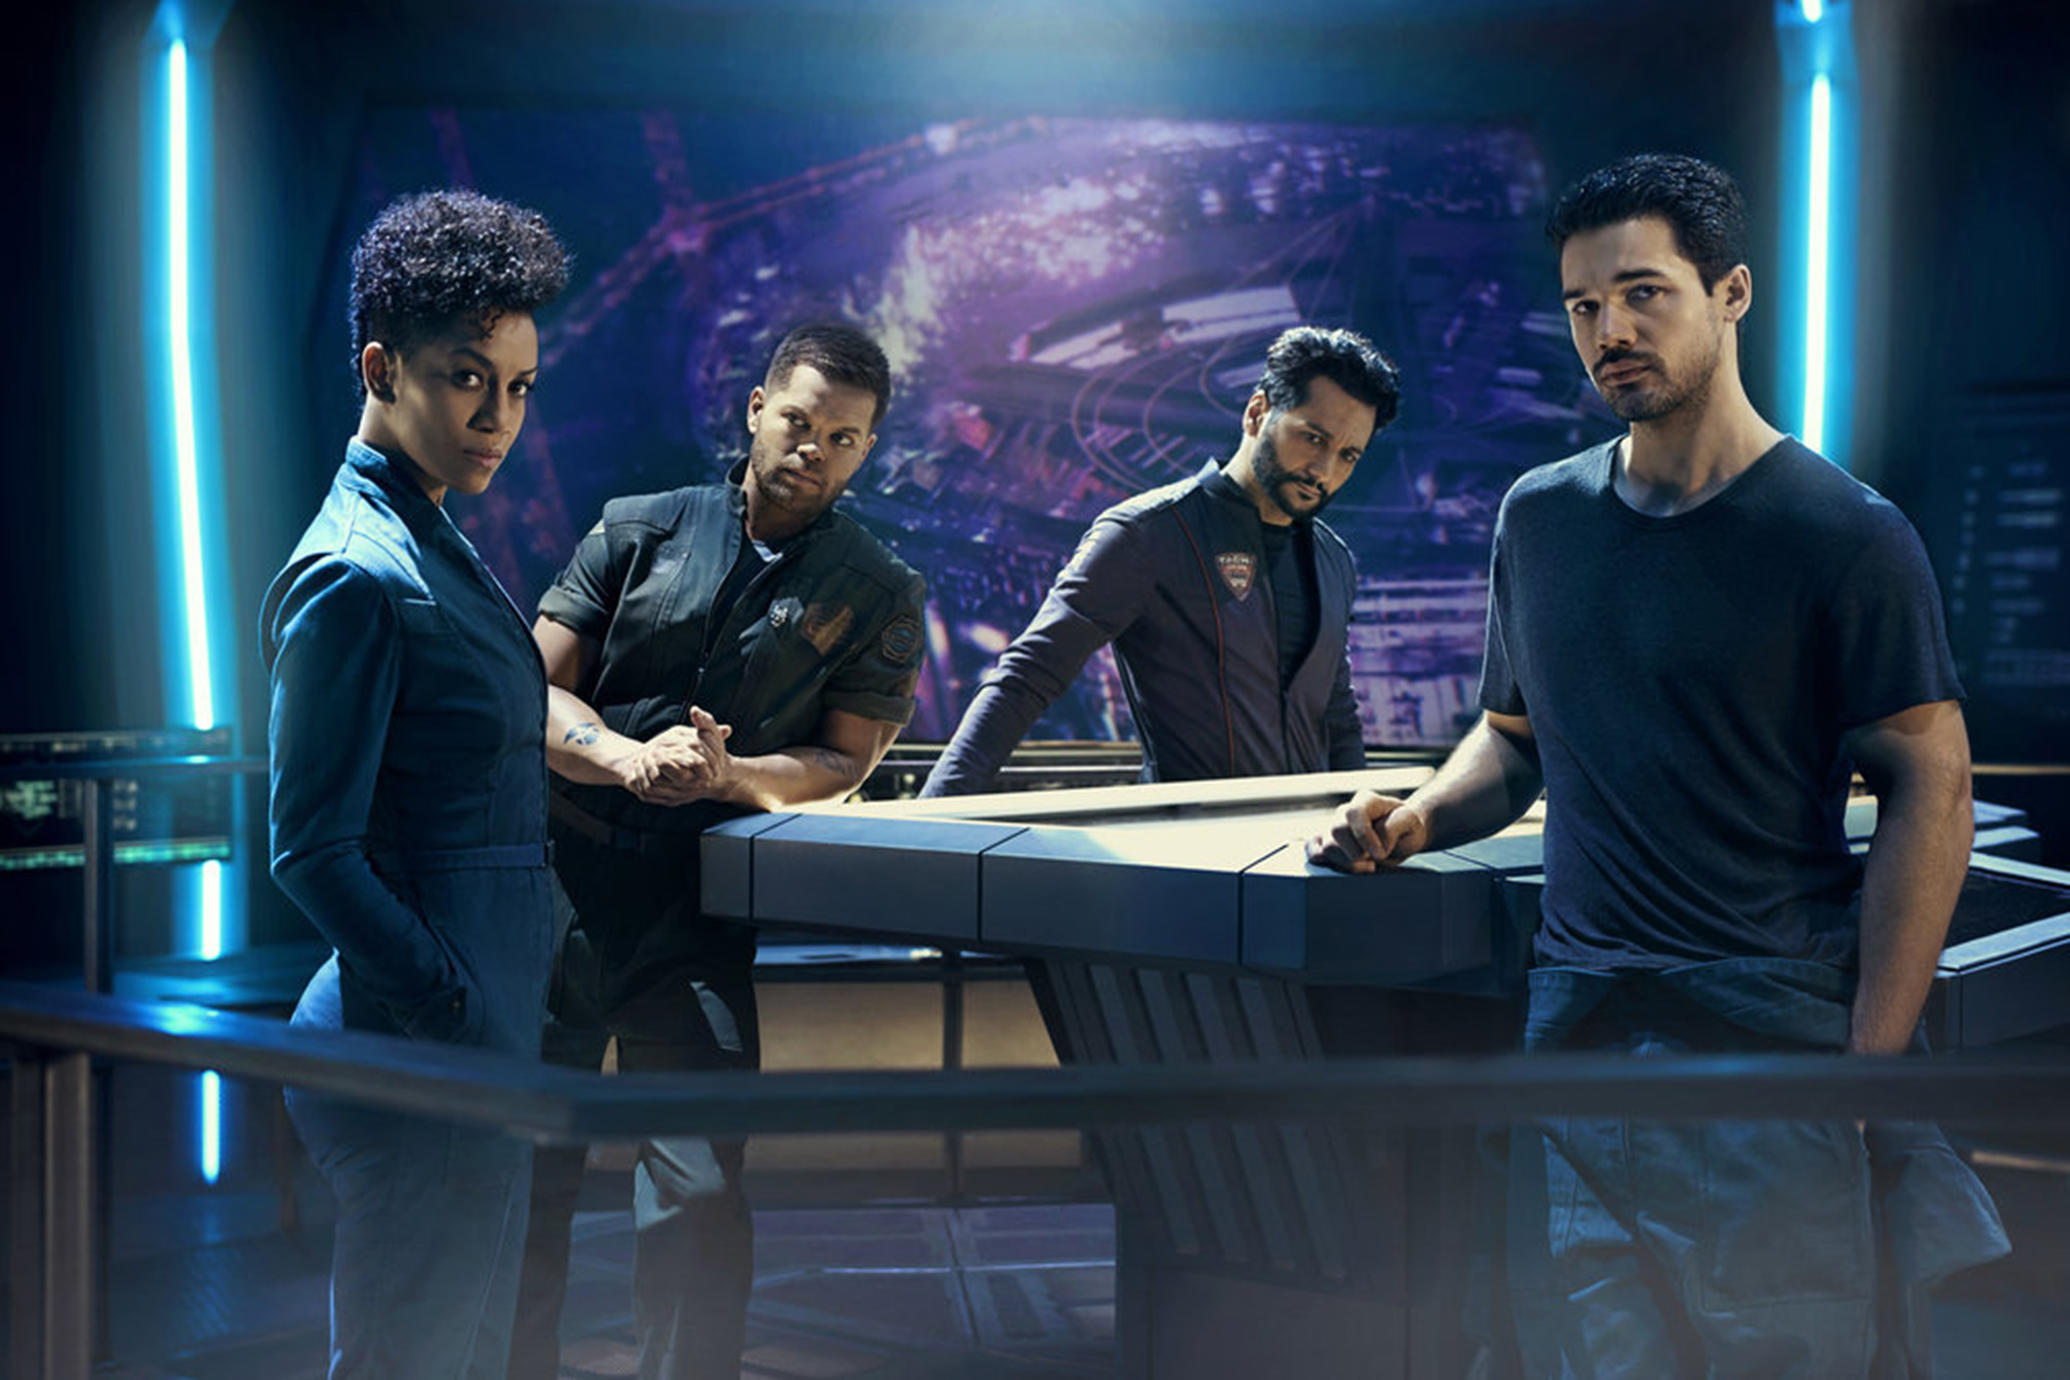 The Expanse's third season will be its last on the Syfy